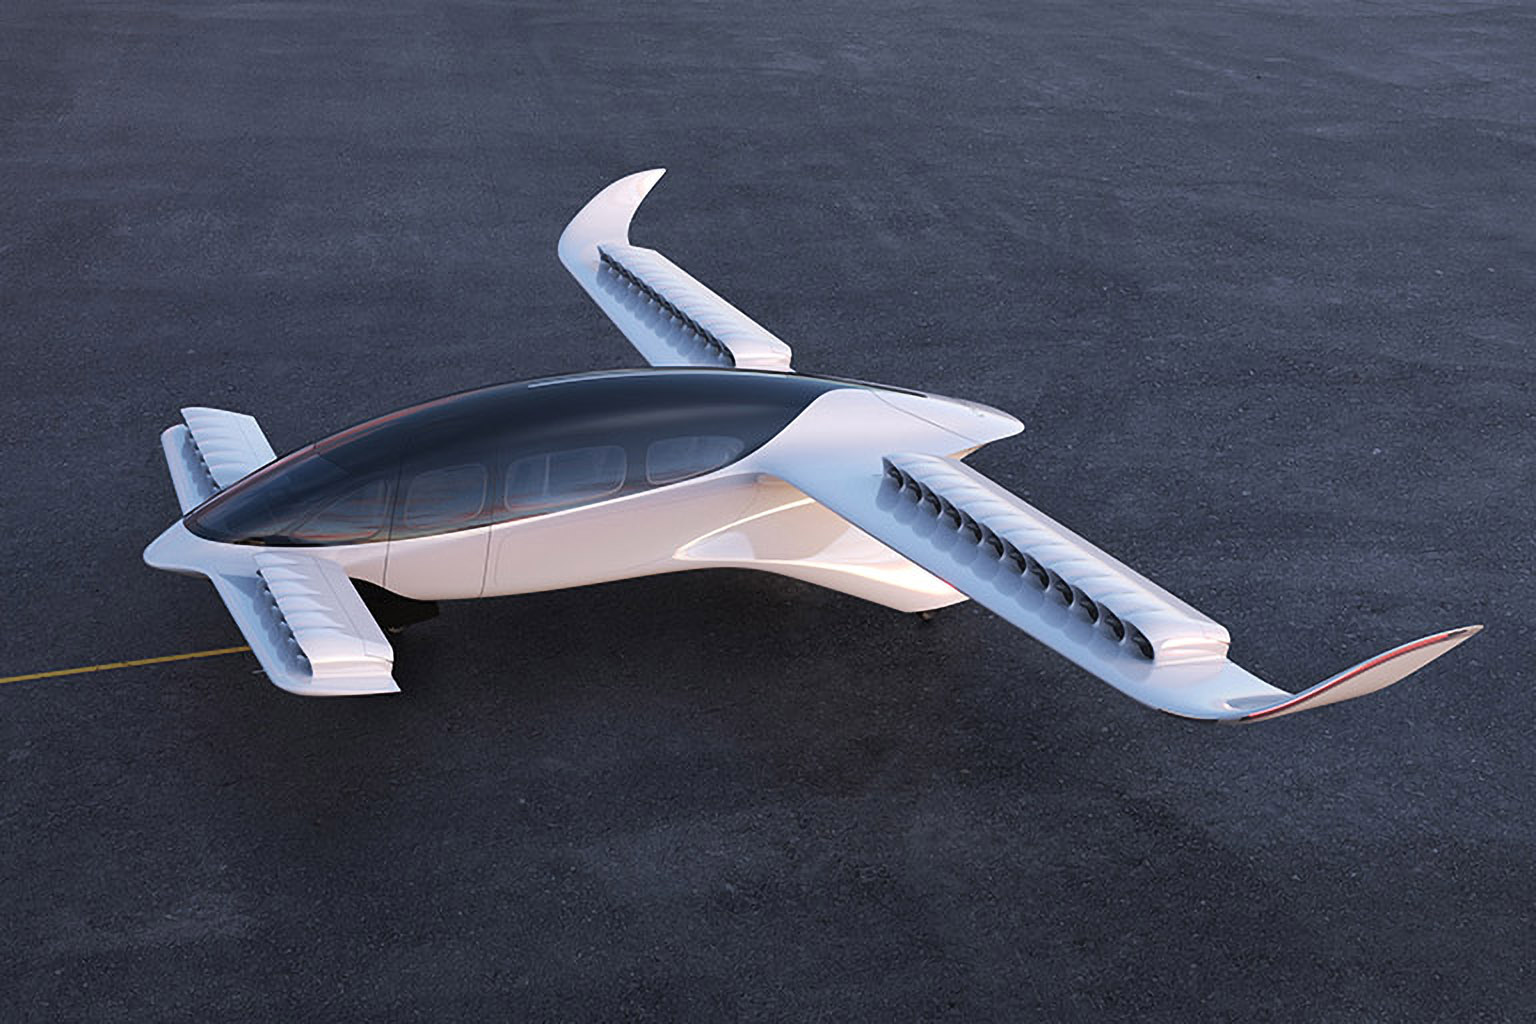 Lilium's 7-seat eVTOL will offer cruise speeds up to 175 mph and a range over 155 miles